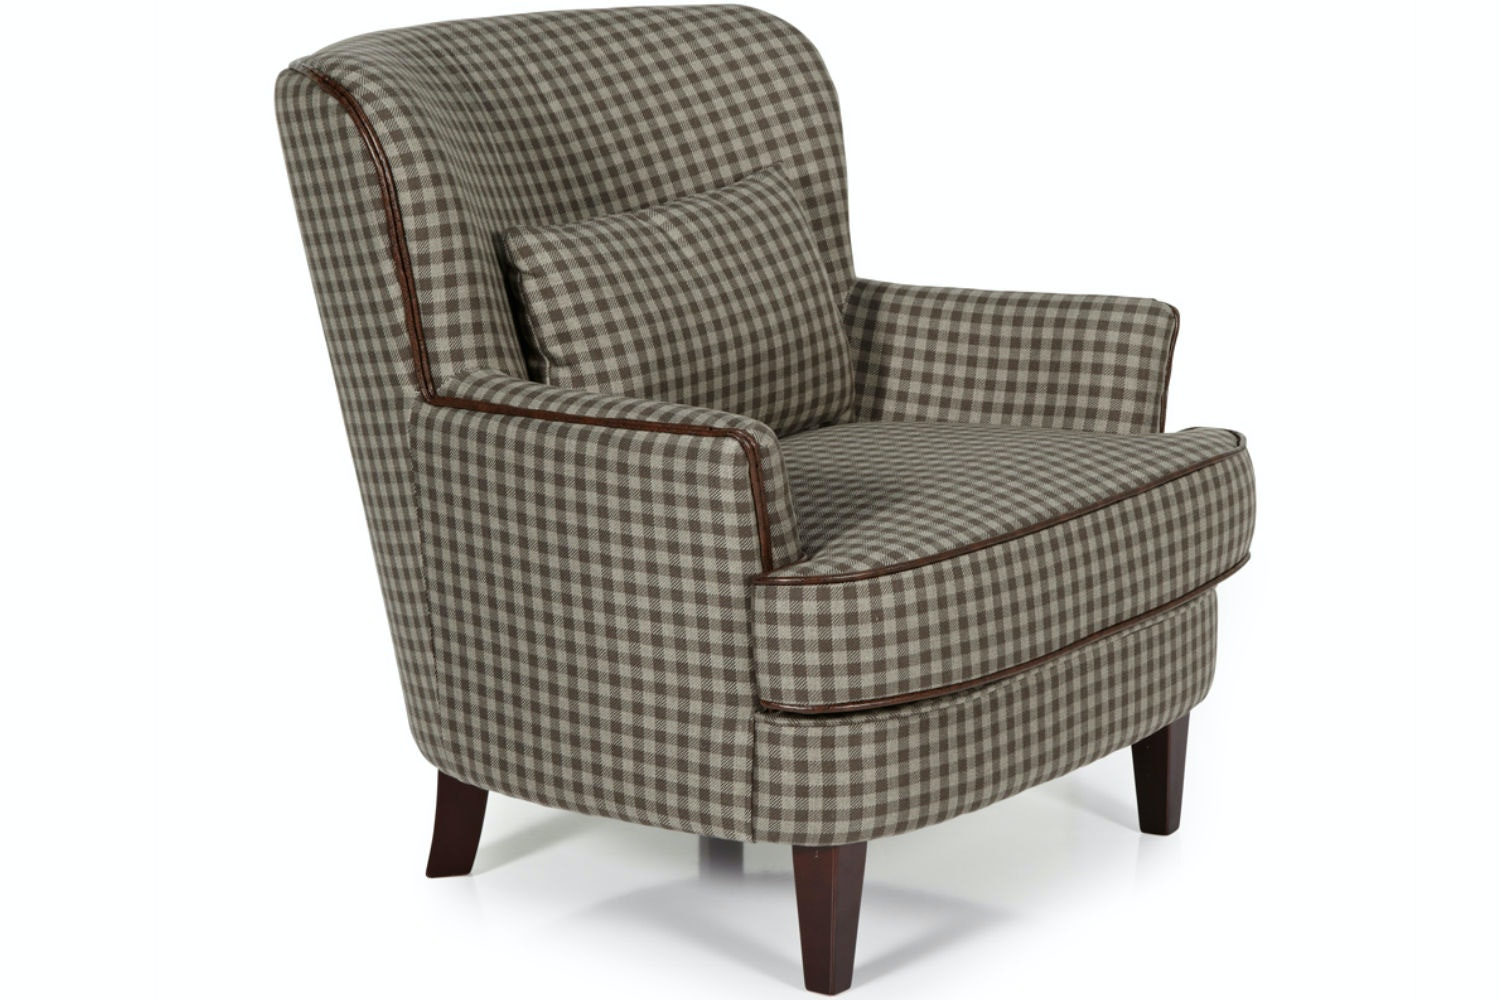 Trafalgar Bedroom Chair | Brown